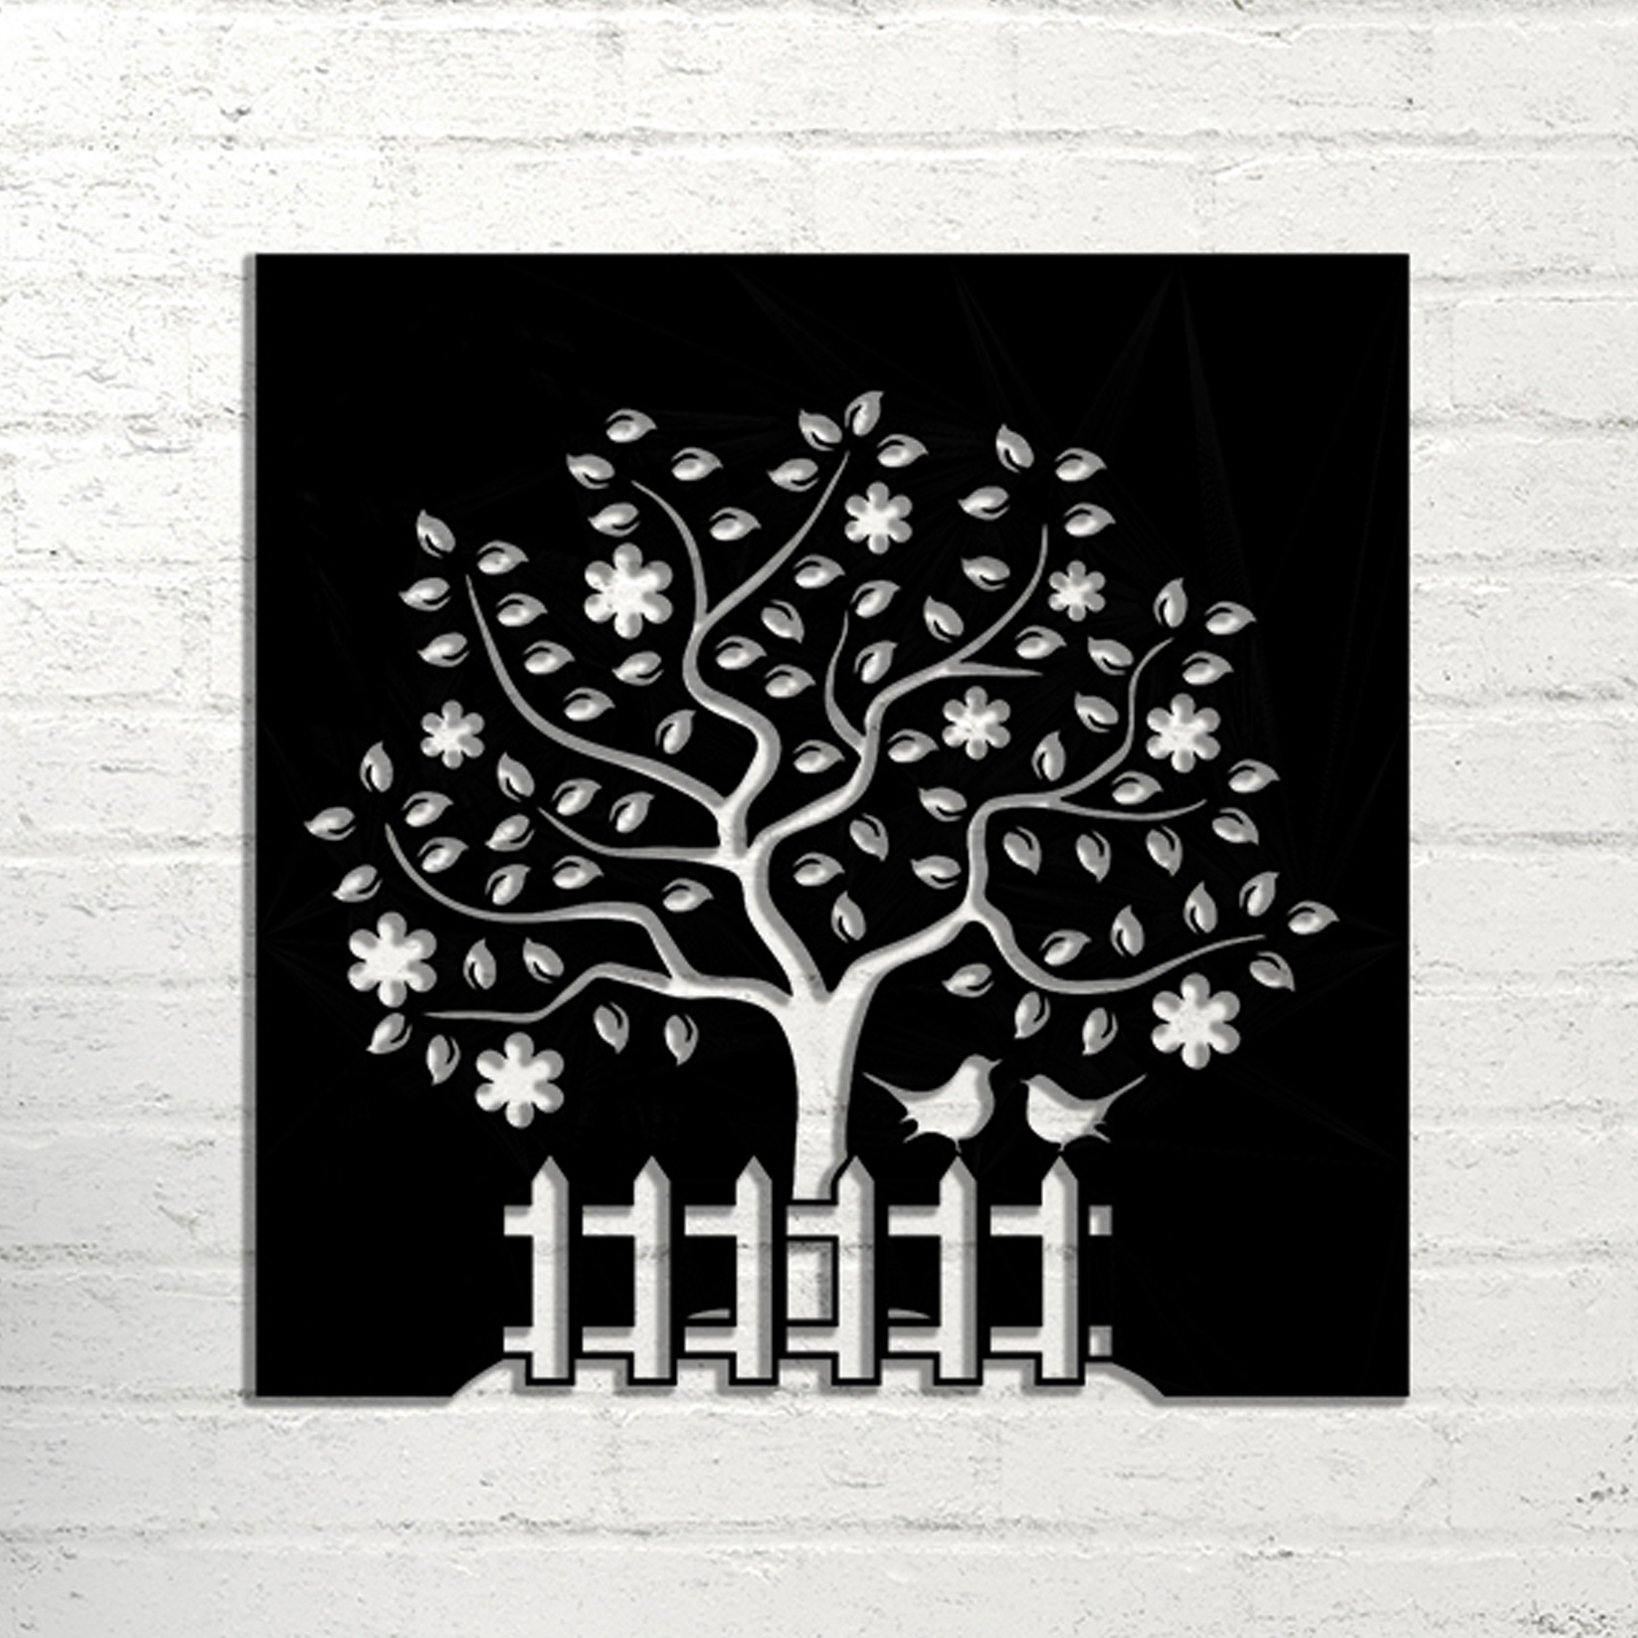 Tree Handmade Metal Wall Art - Decorotika